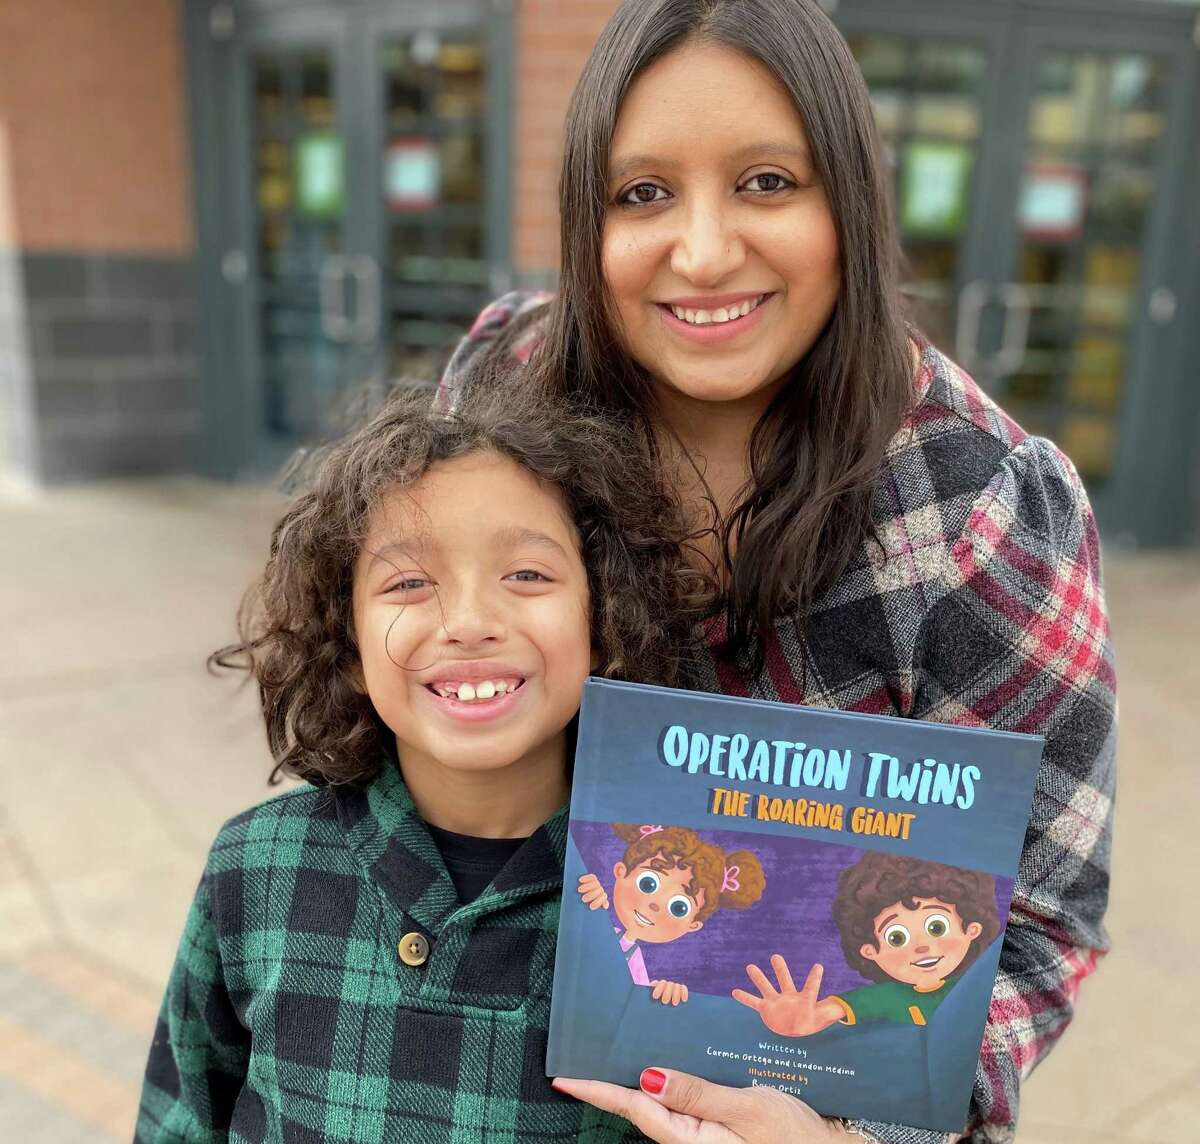 """Conroe residents Carmen Ortega and her son, Landon Medina, 8, worked together to publish a children's book """"Operation Twins The Roaring Giant."""" It is available through Barnes and Noble."""